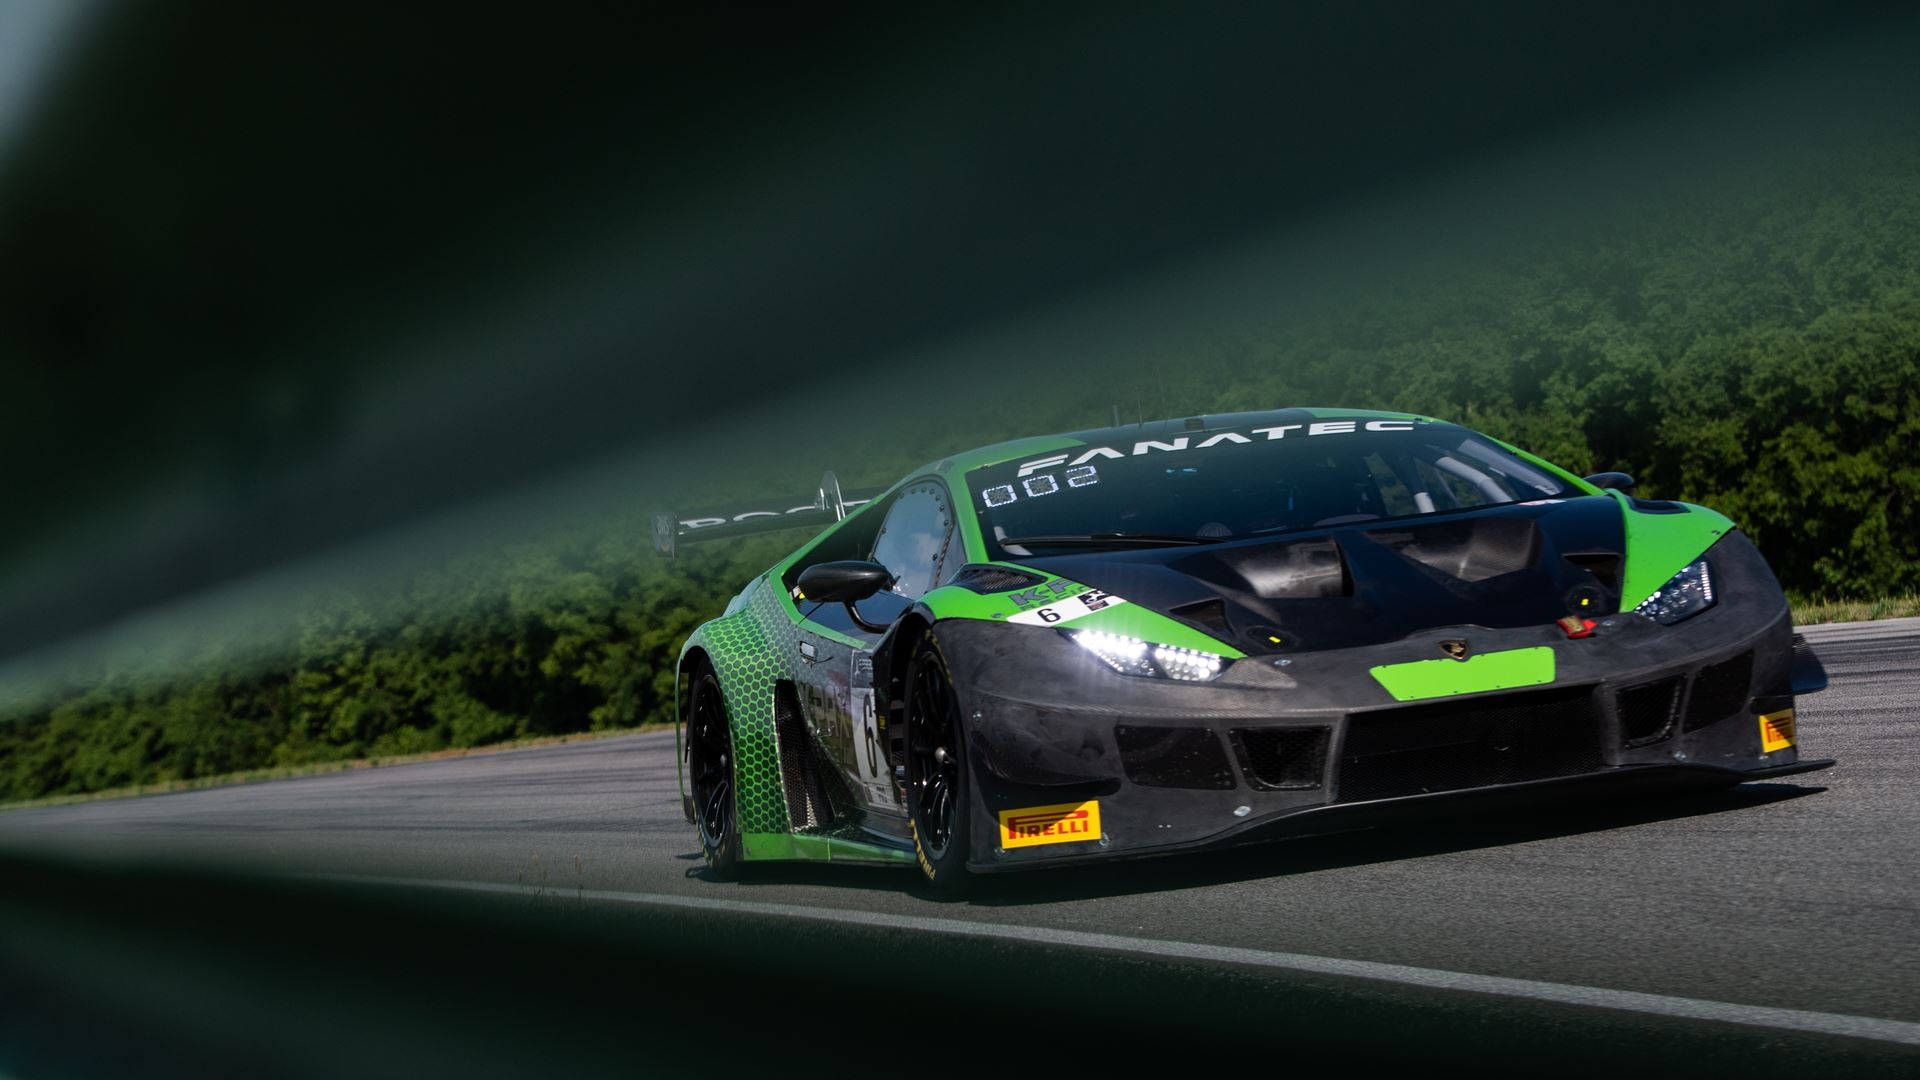 Lamborghini makes history with 100th GT3 victory thanks to another GT World Challenge America success - Image 3